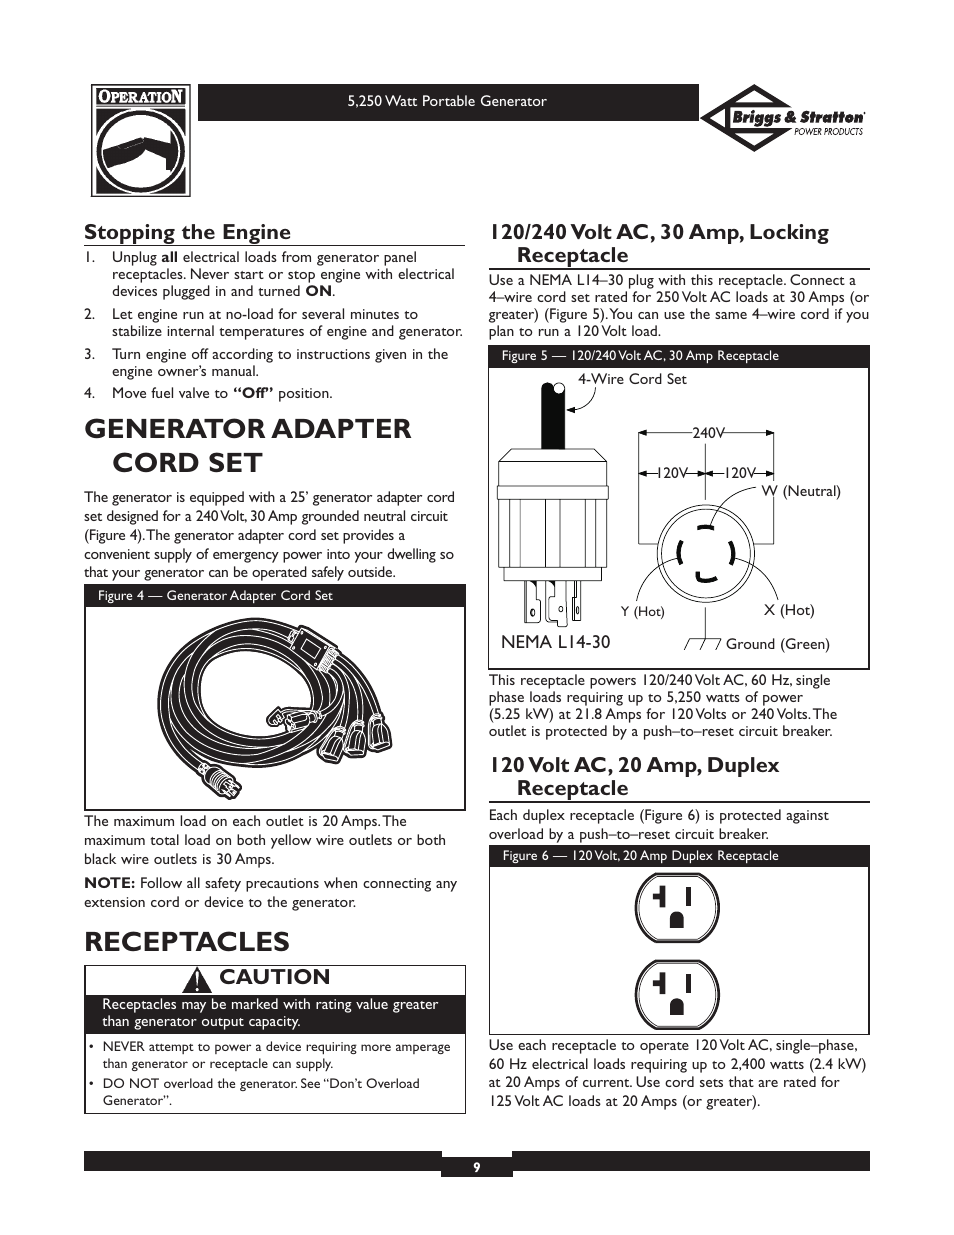 Generator Adapter Cord Set Receptacles Stopping The Engine 6 Volt Wiring Diagram For 9n Briggs Stratton 30204 User Manual Page 9 28